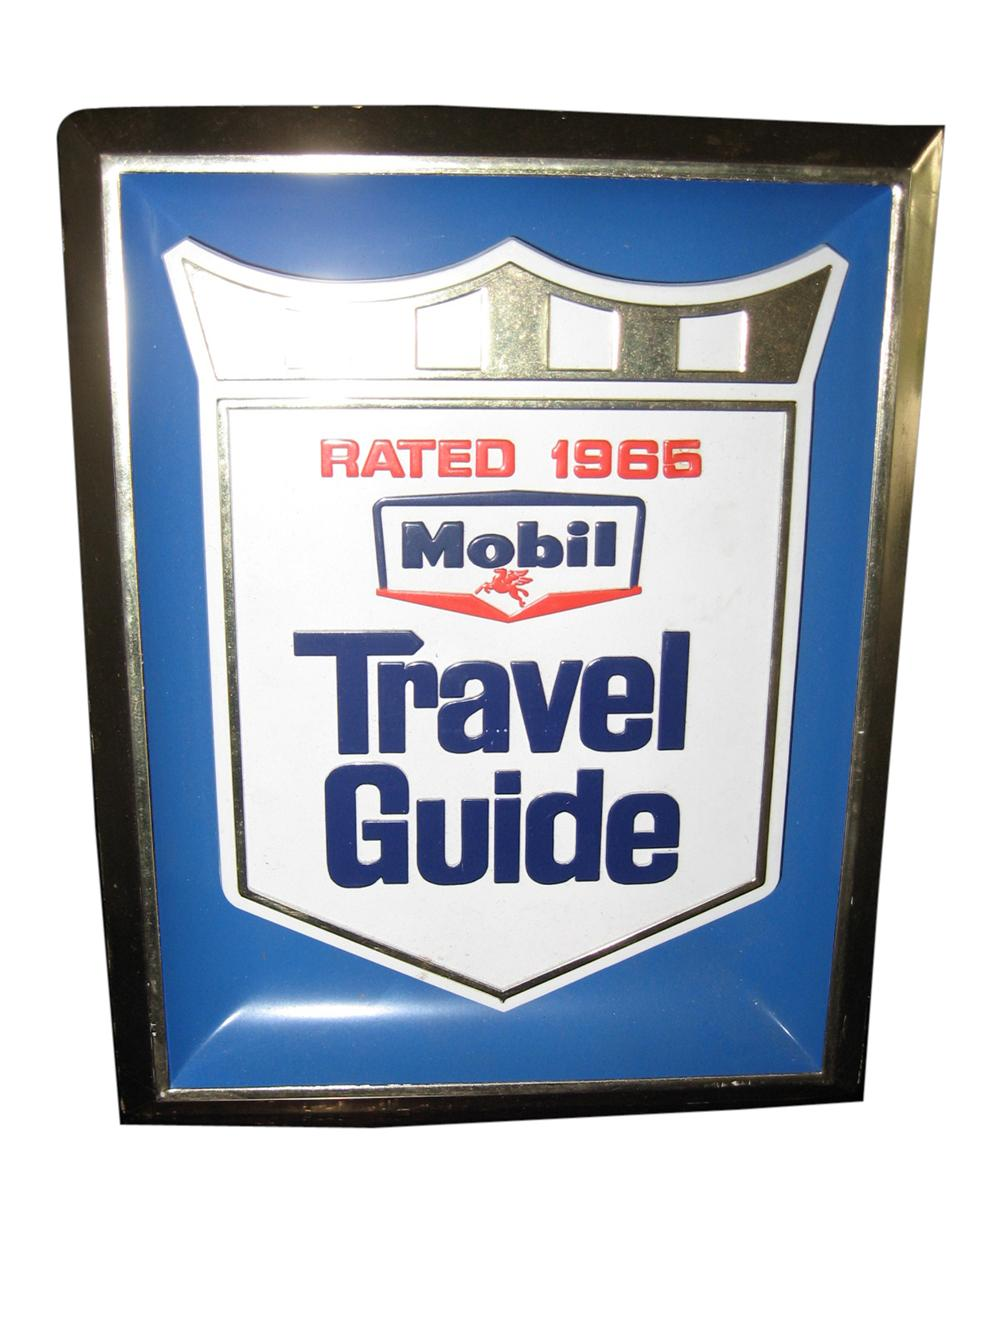 Fabulous 1965 Mobil Travel Guide counter-top display sign. - Front 3/4 - 108632